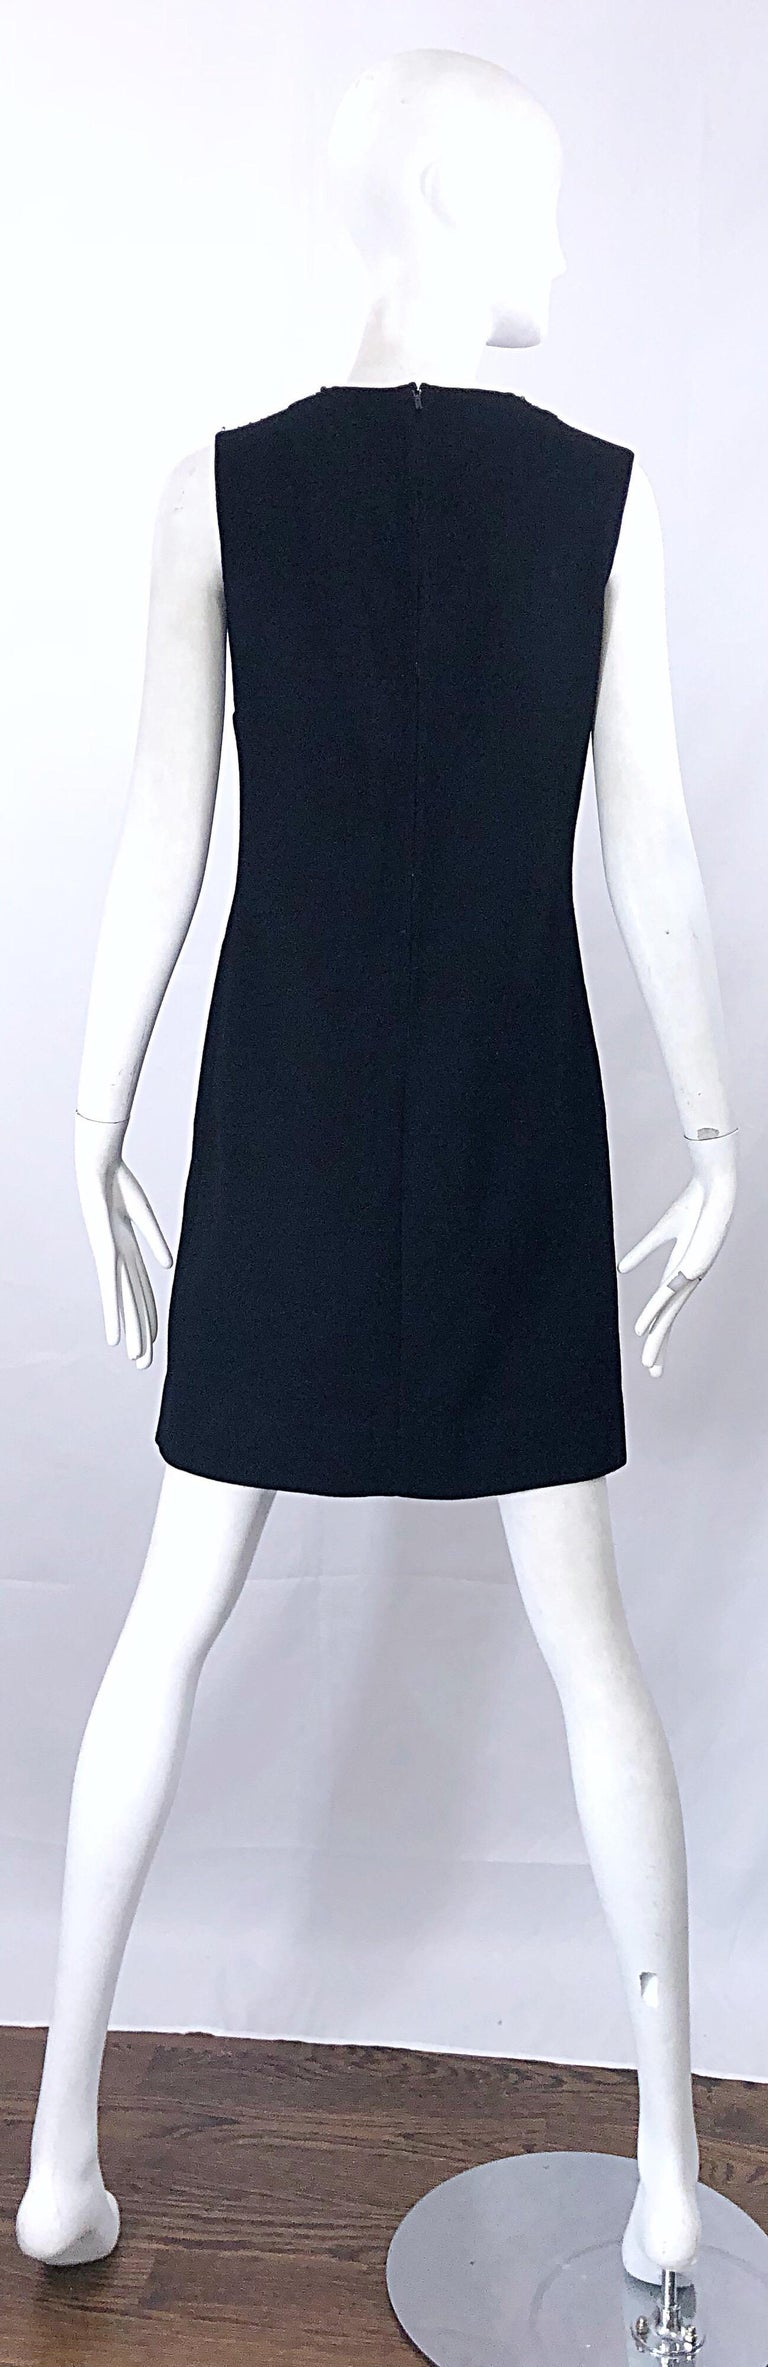 Chic 1960s St Andrews Black Zephyr Wool British Hong Kong Beaded 60s Shift Dress For Sale 1